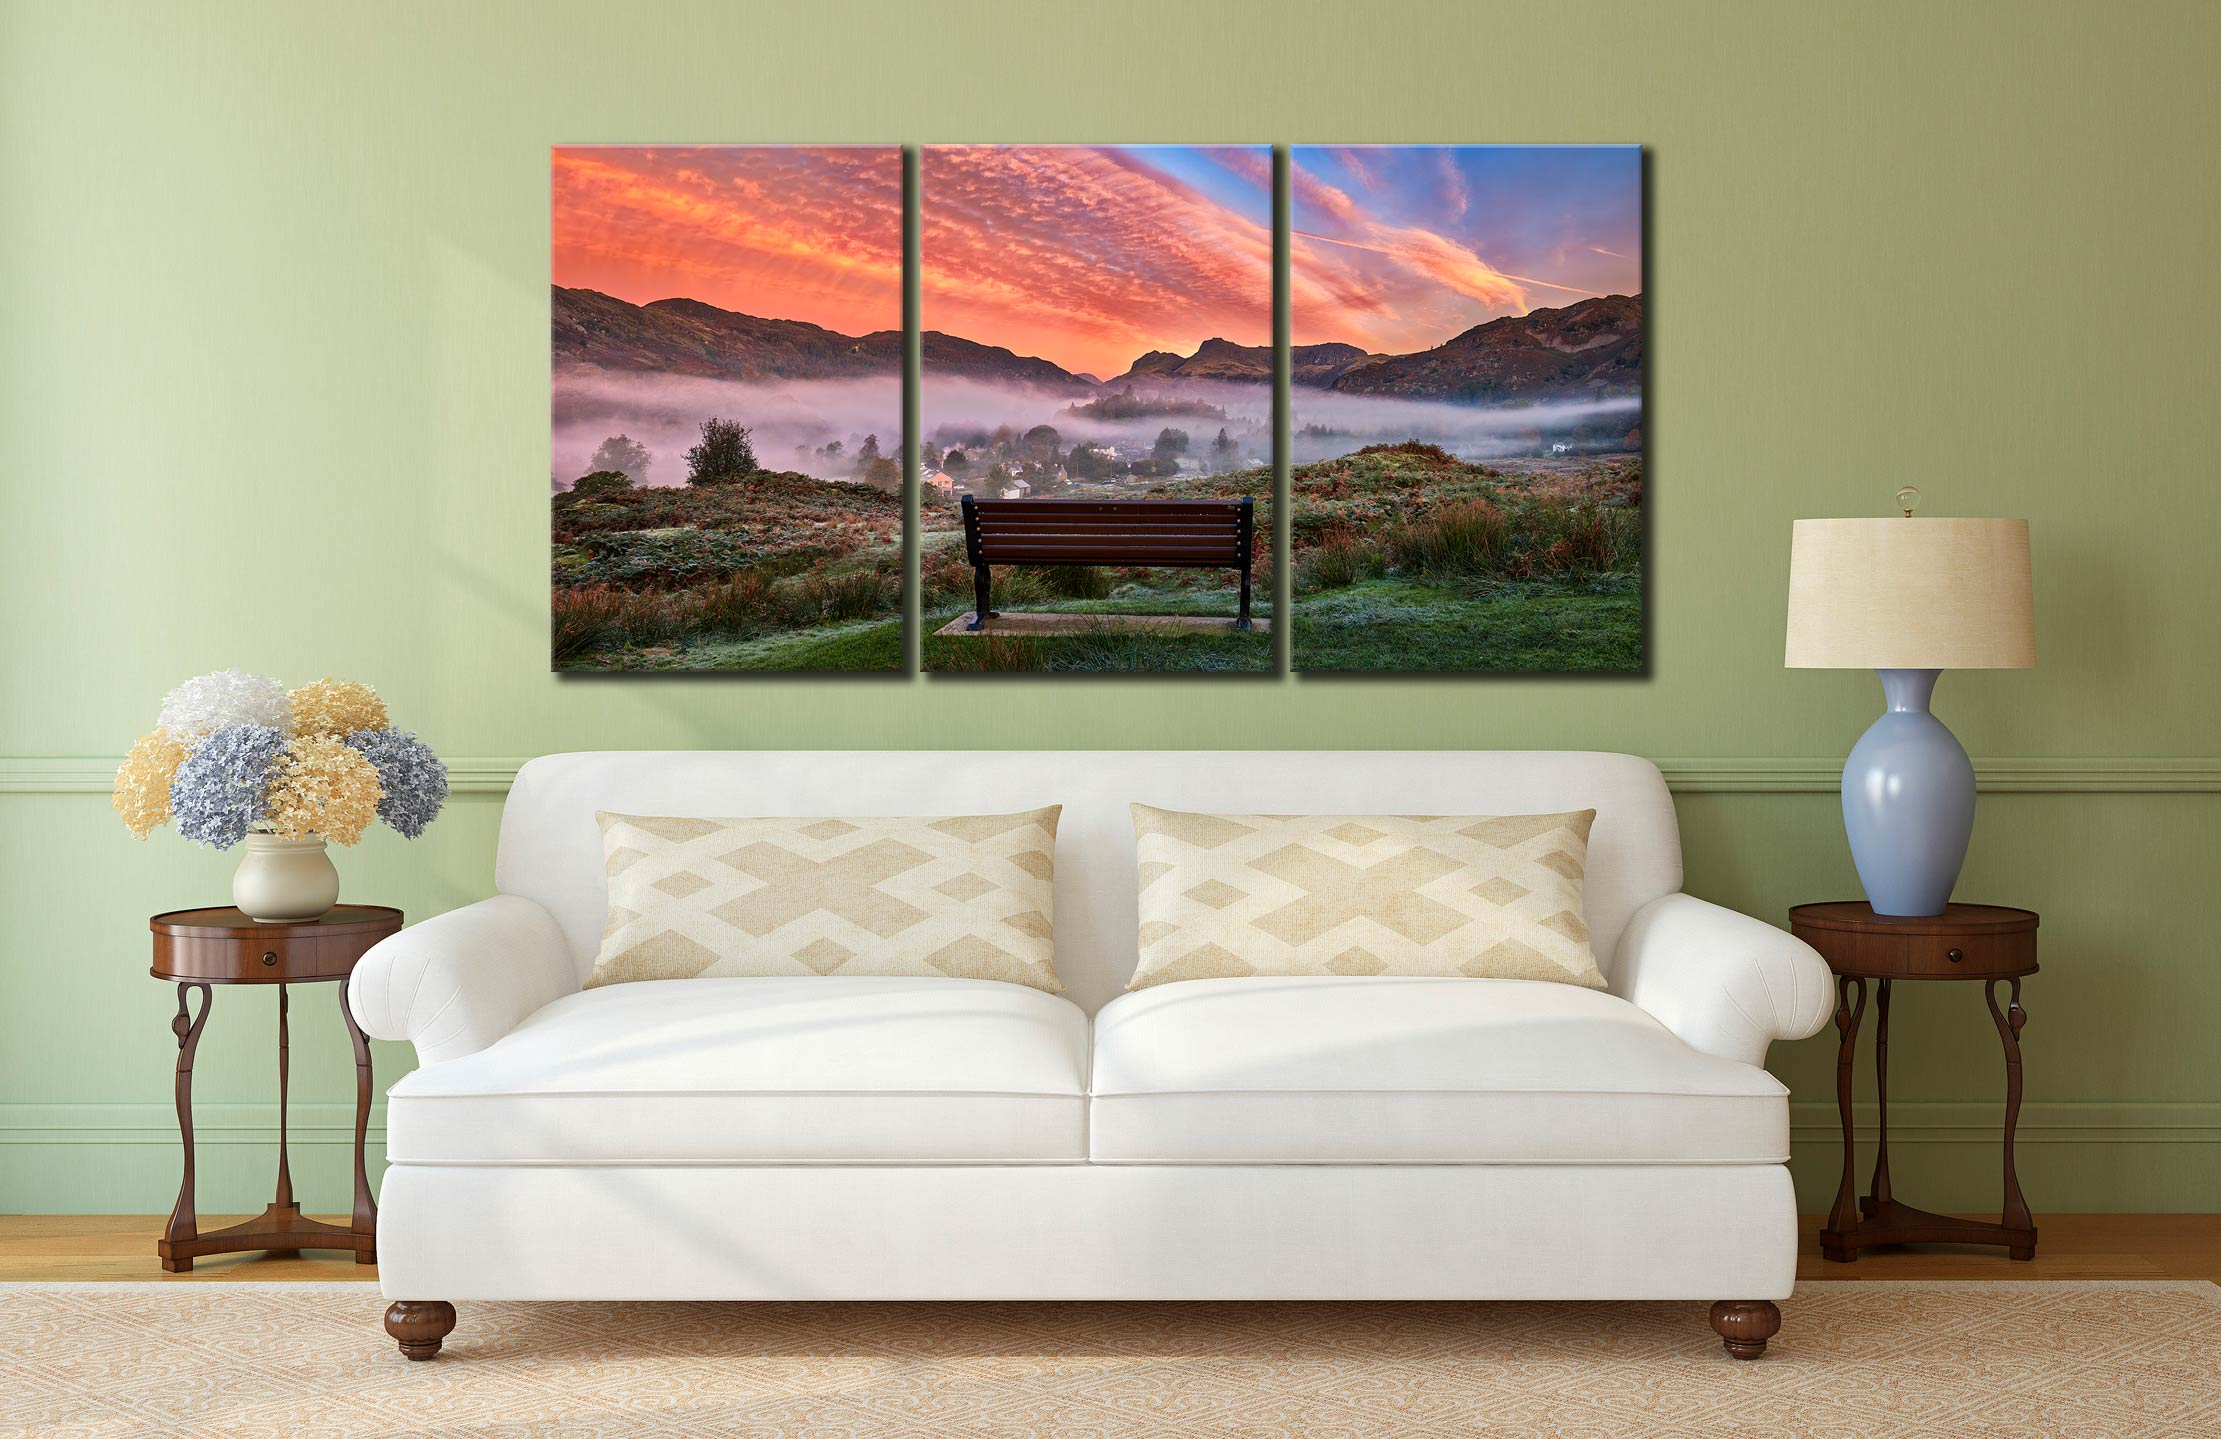 Dawn Mists Over Elterwater Village - 3 Panel Canvas on Wall